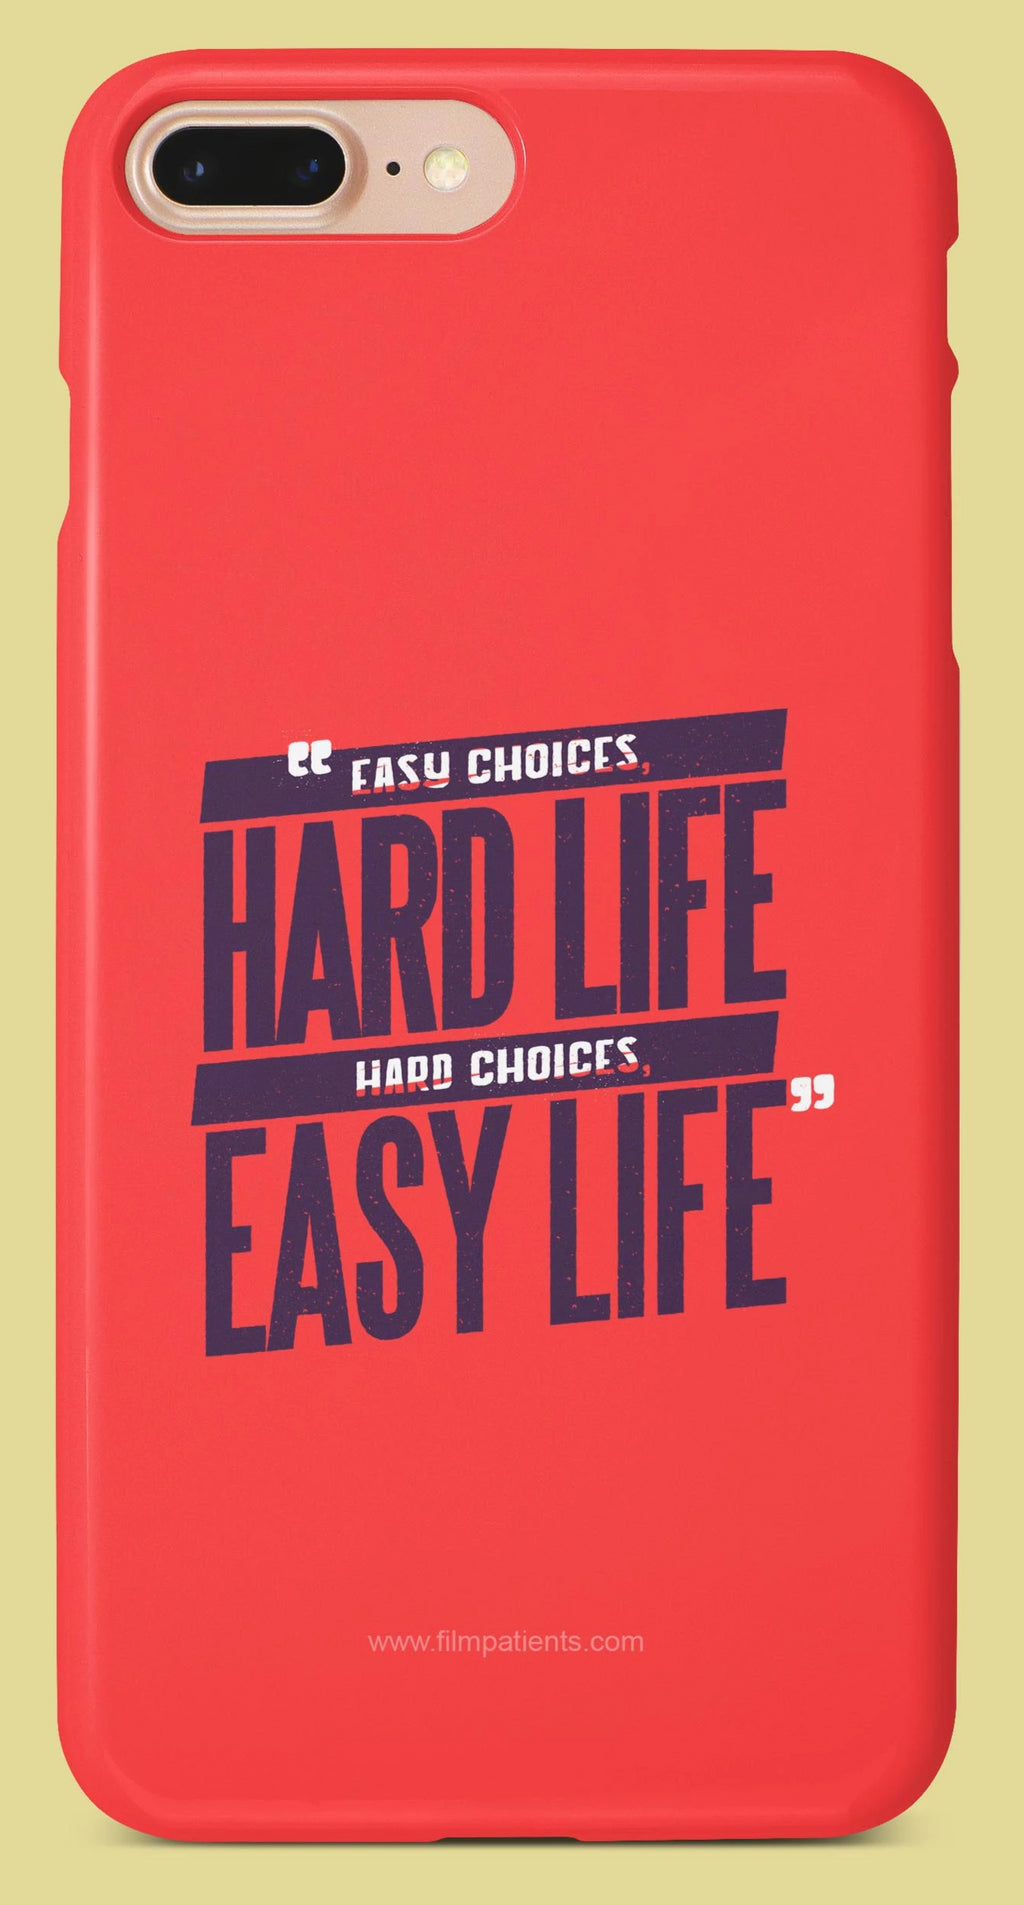 Hard Life Easy Life Designer Cover | Film Patients